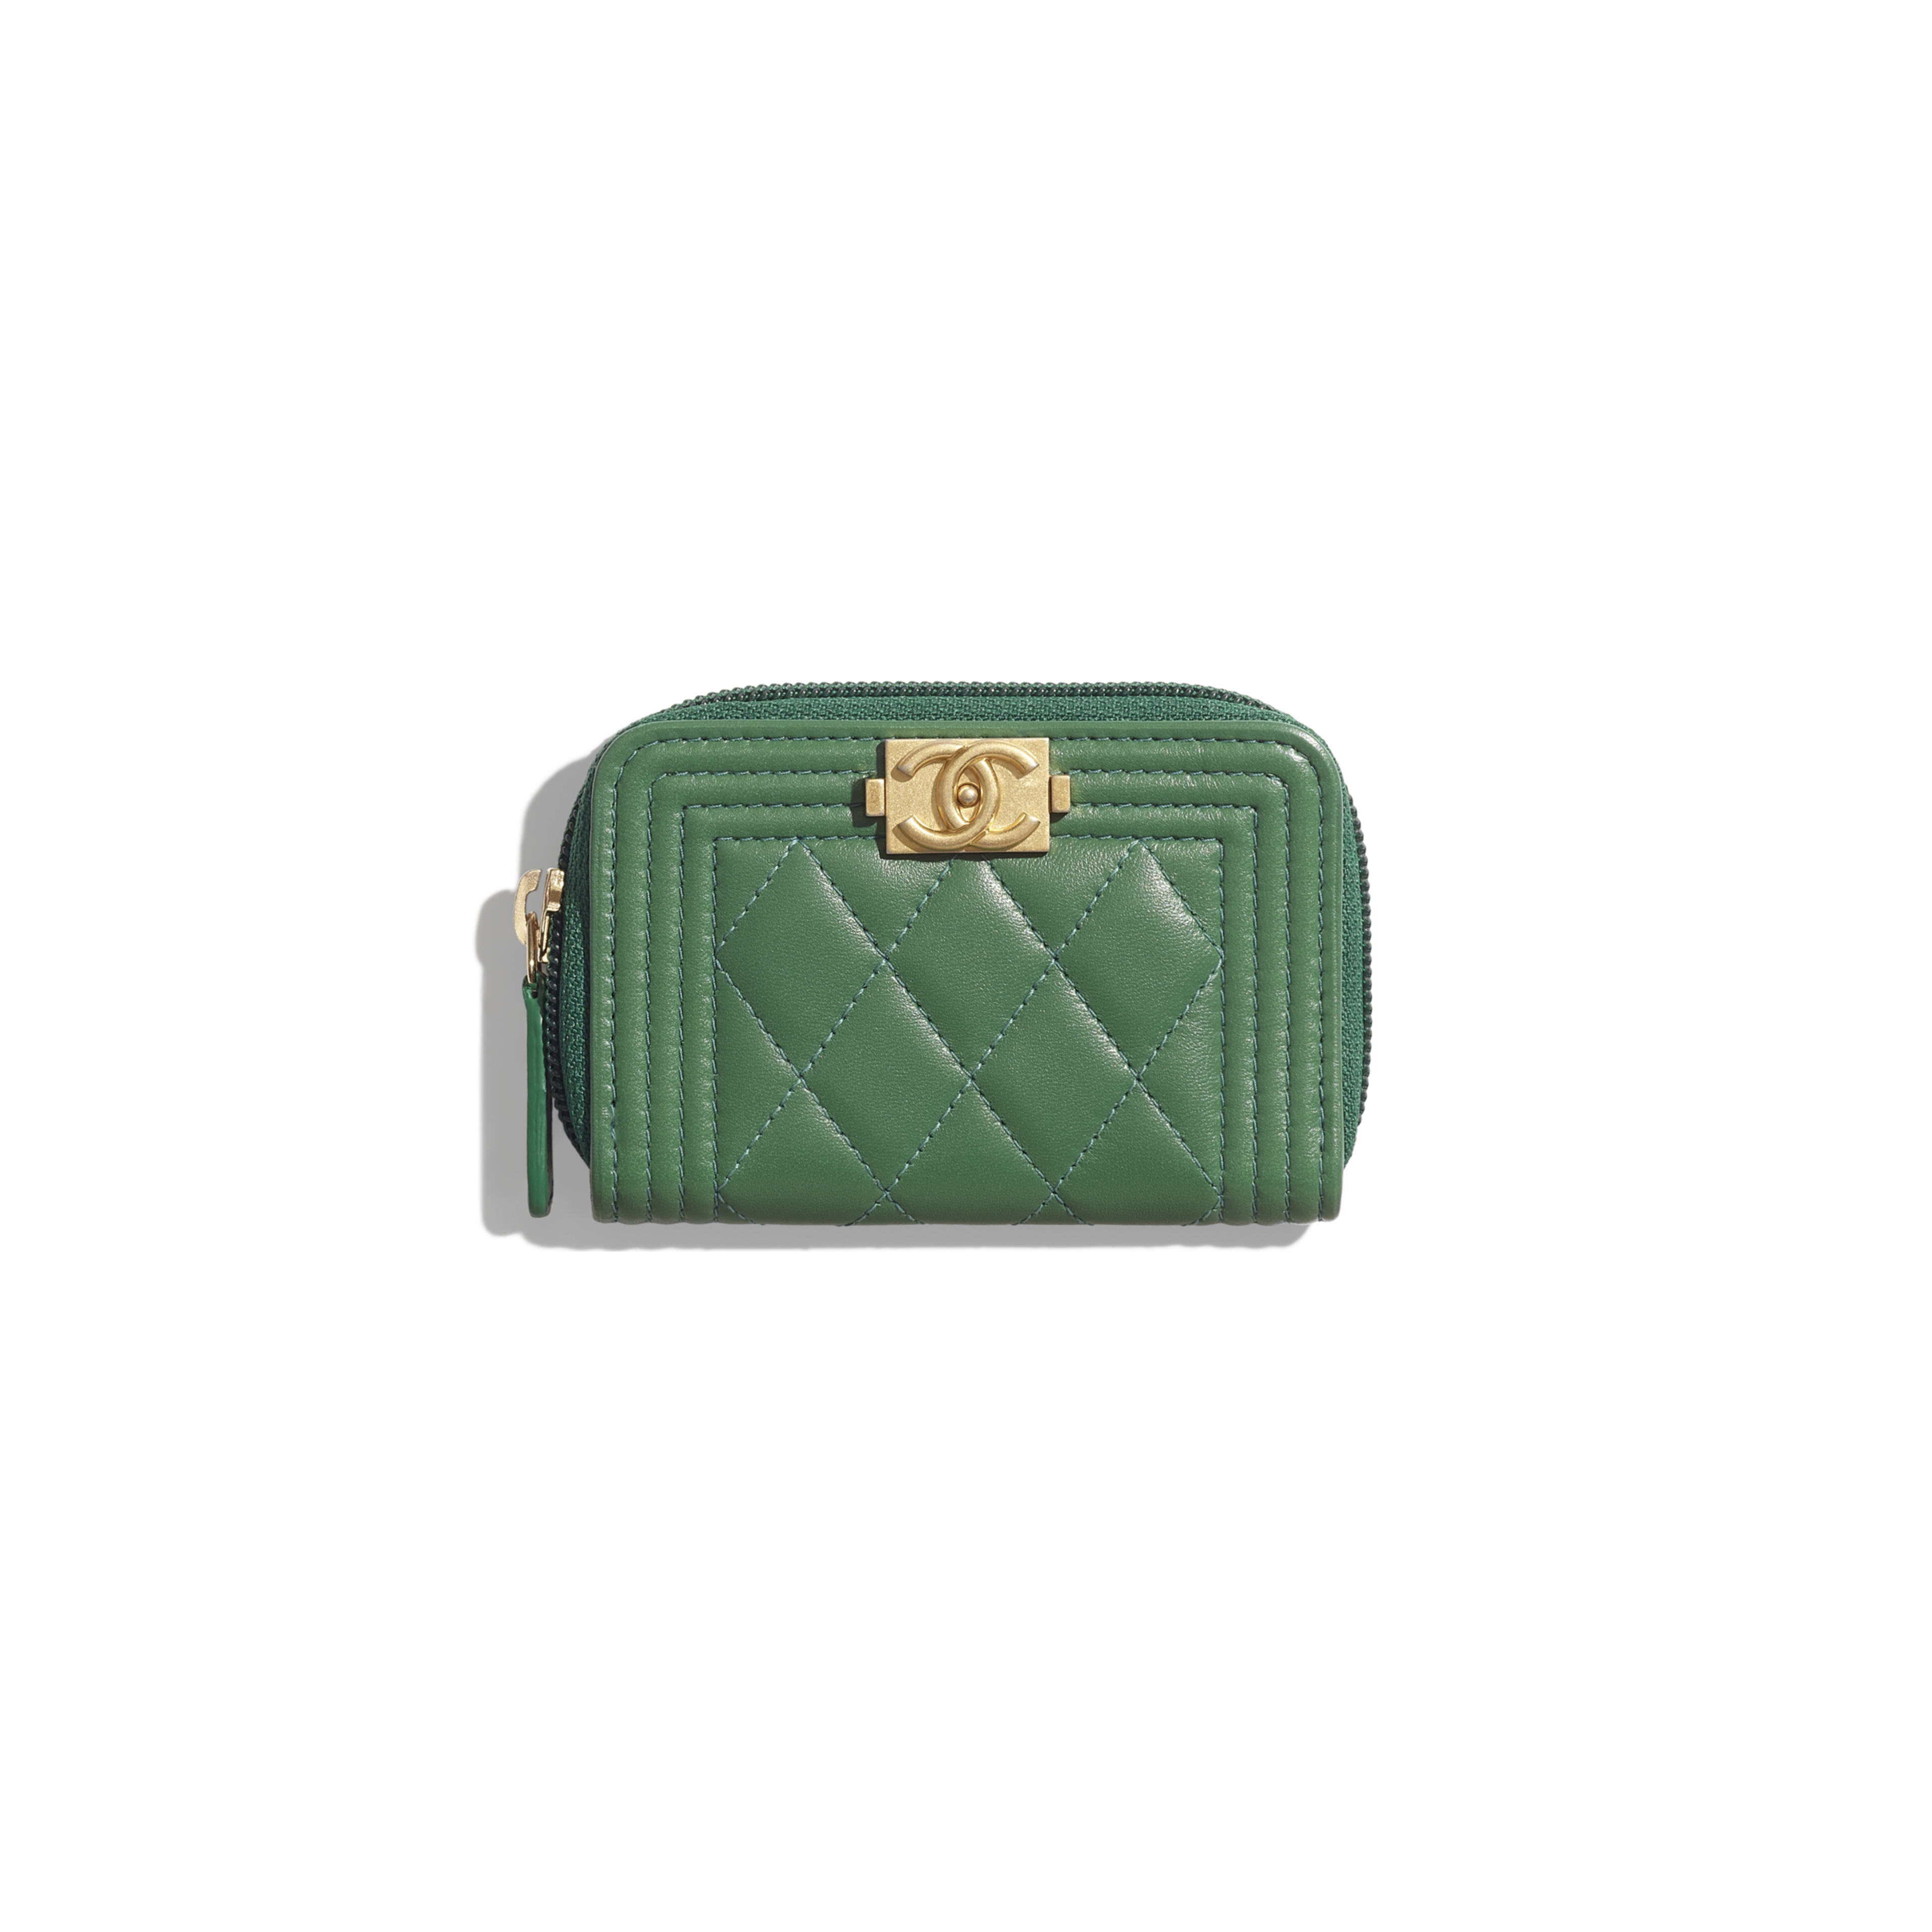 BOY CHANEL Zipped Coin Purse - Green - Lambskin - Default view - see full sized version